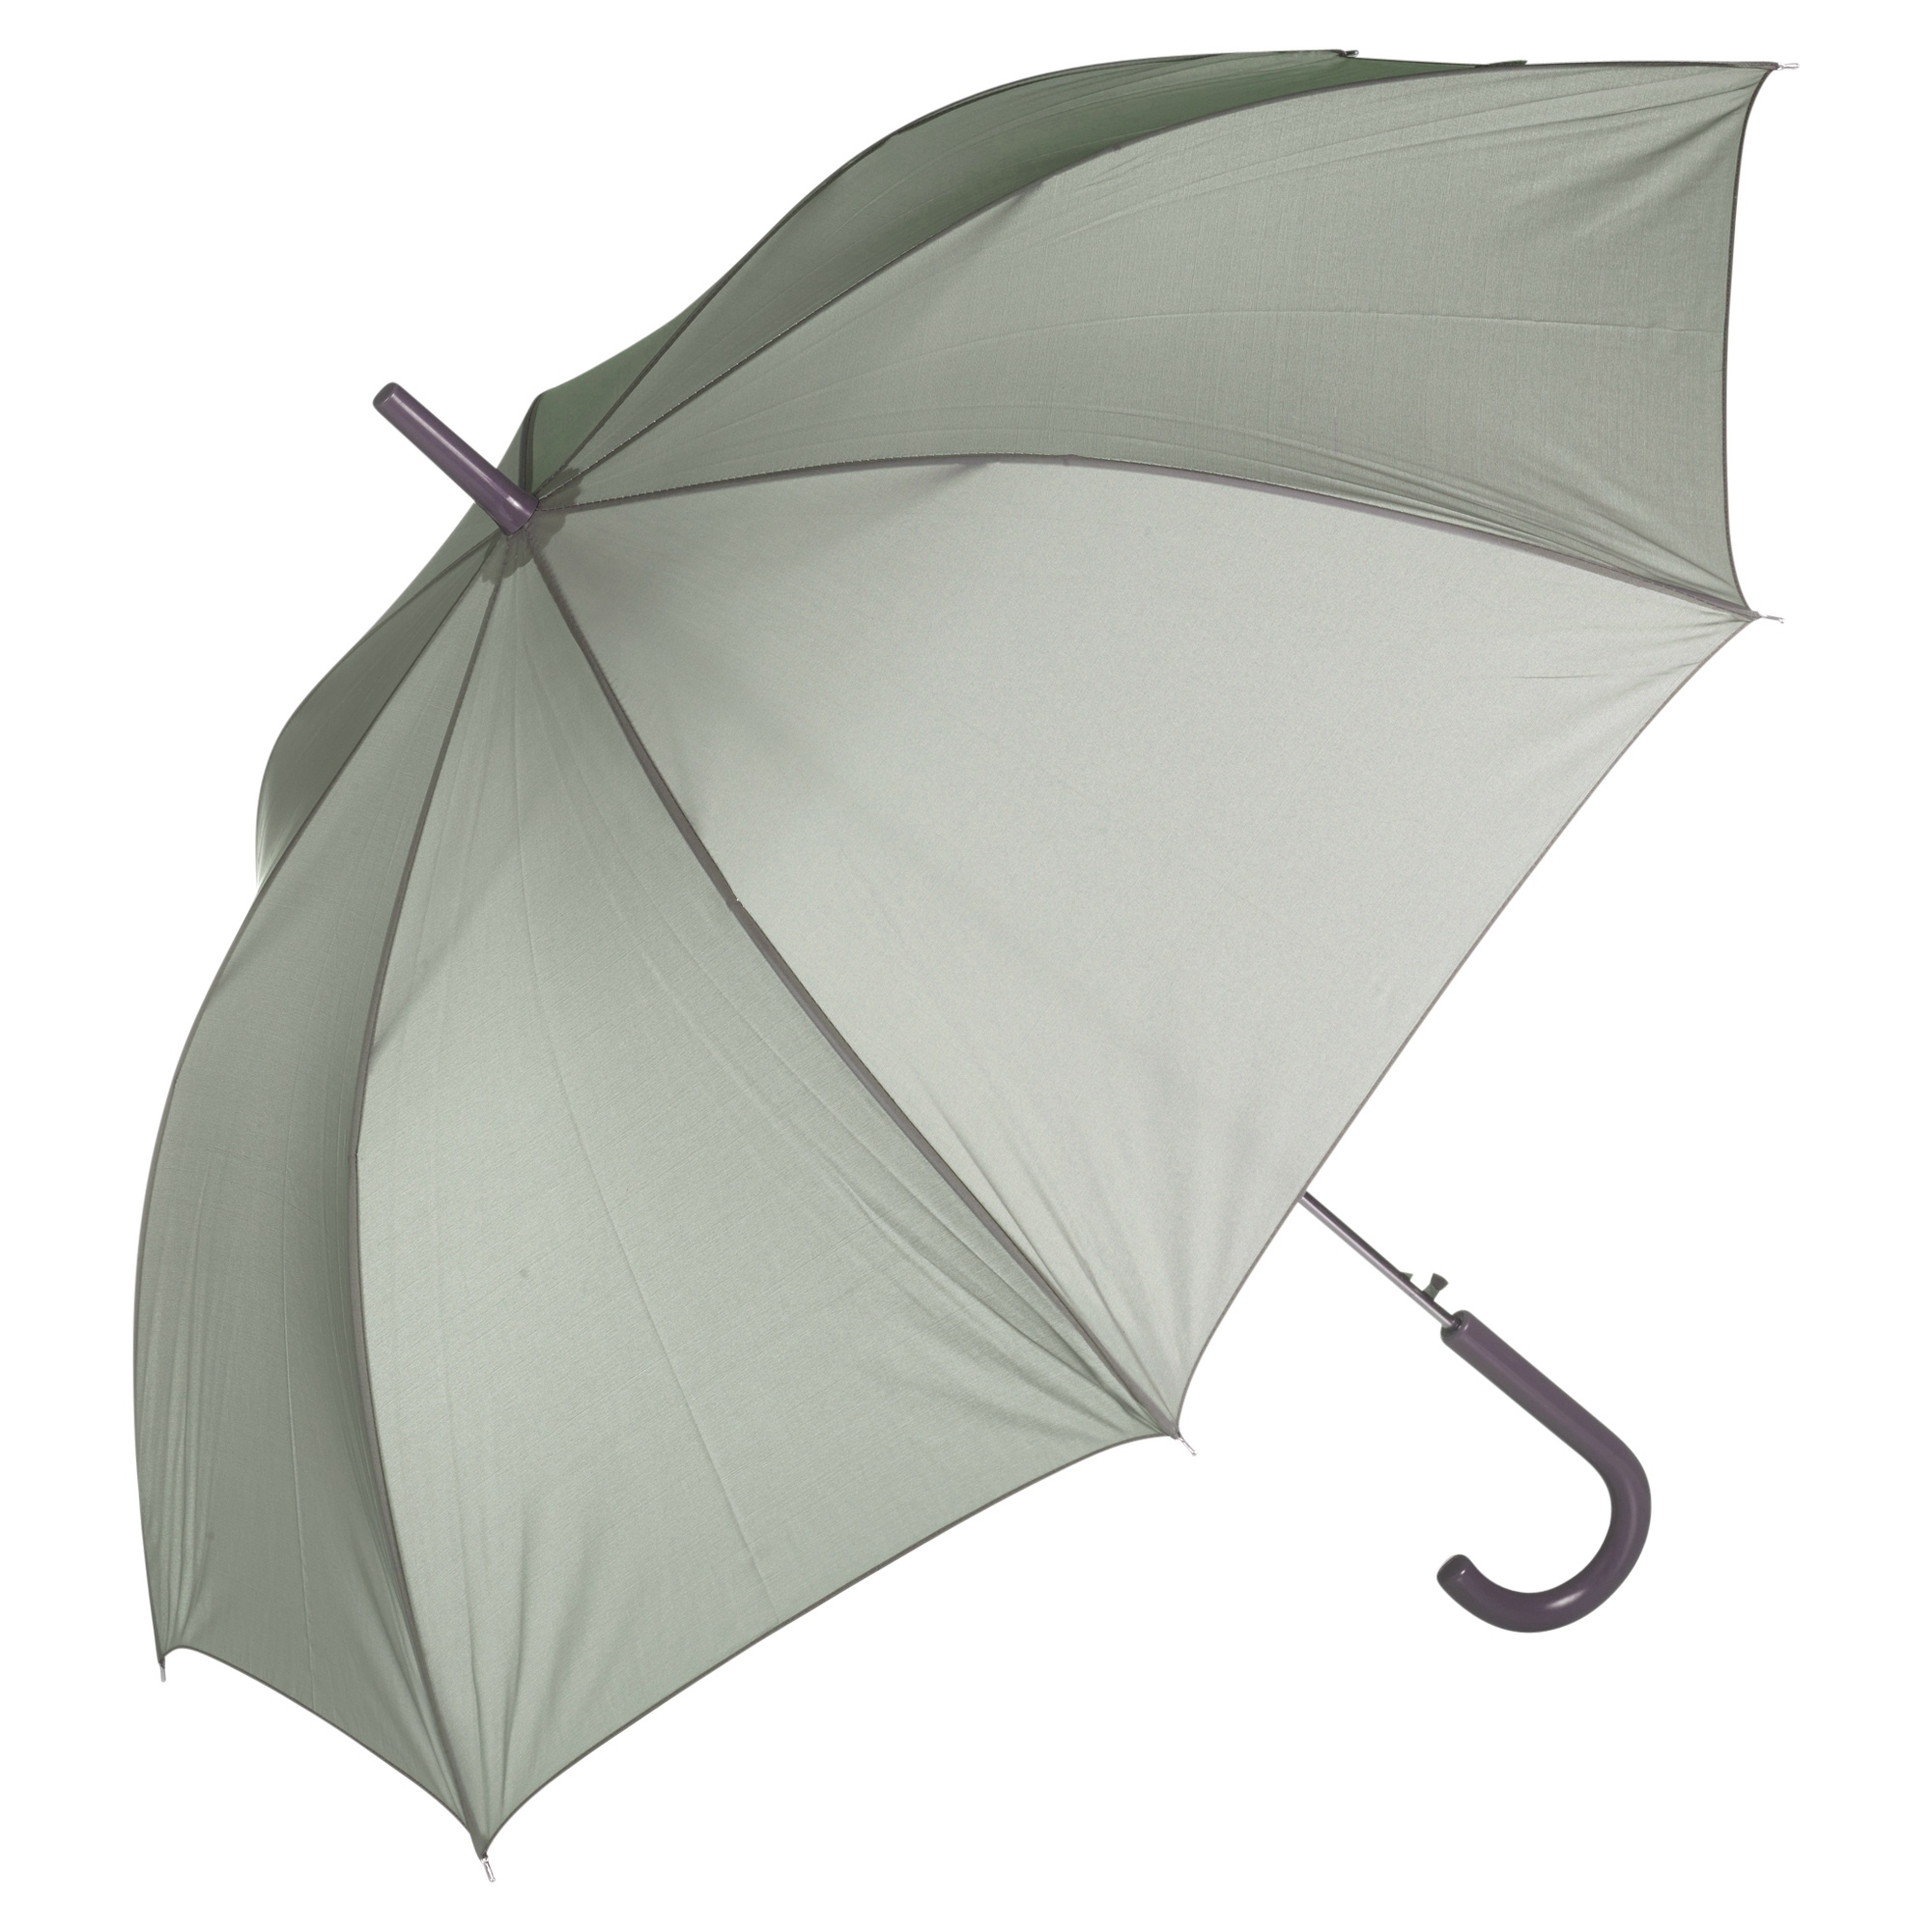 4487b9474 Details about Grey Crook Handle Umbrella Automatic Open Walking Stick Rain  Brolly Winter NEW